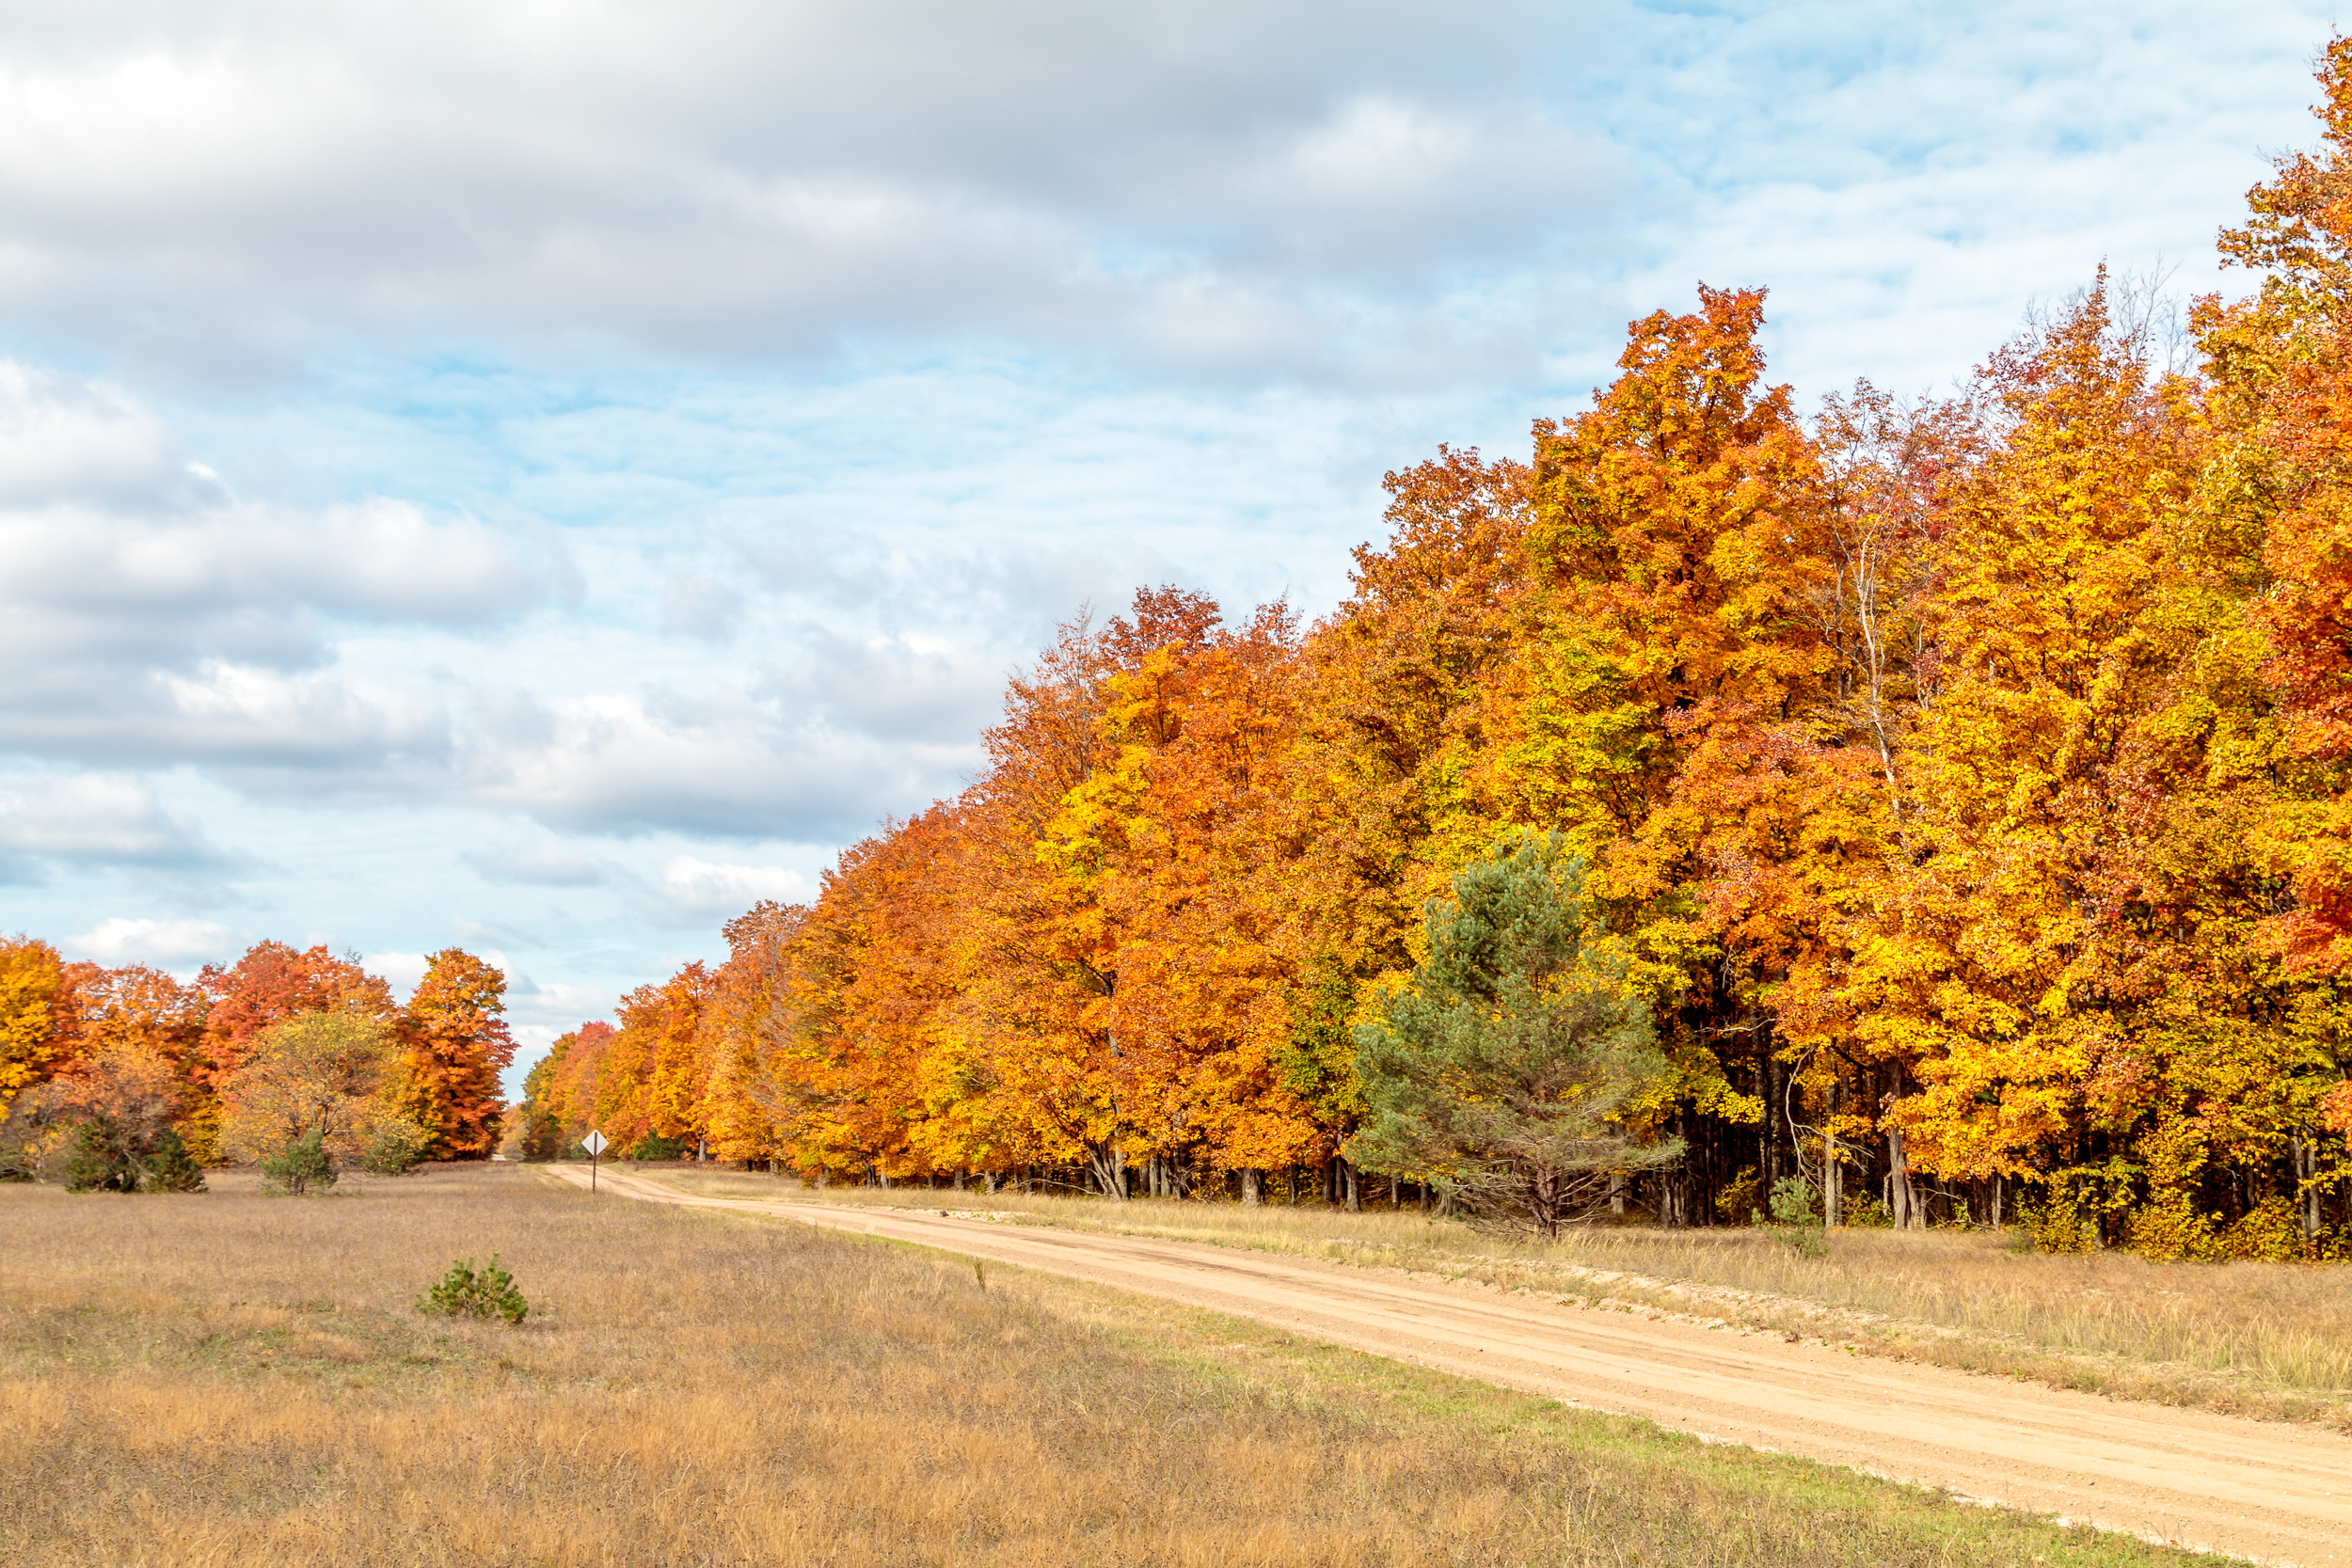 Fall Color along a Dirt Road